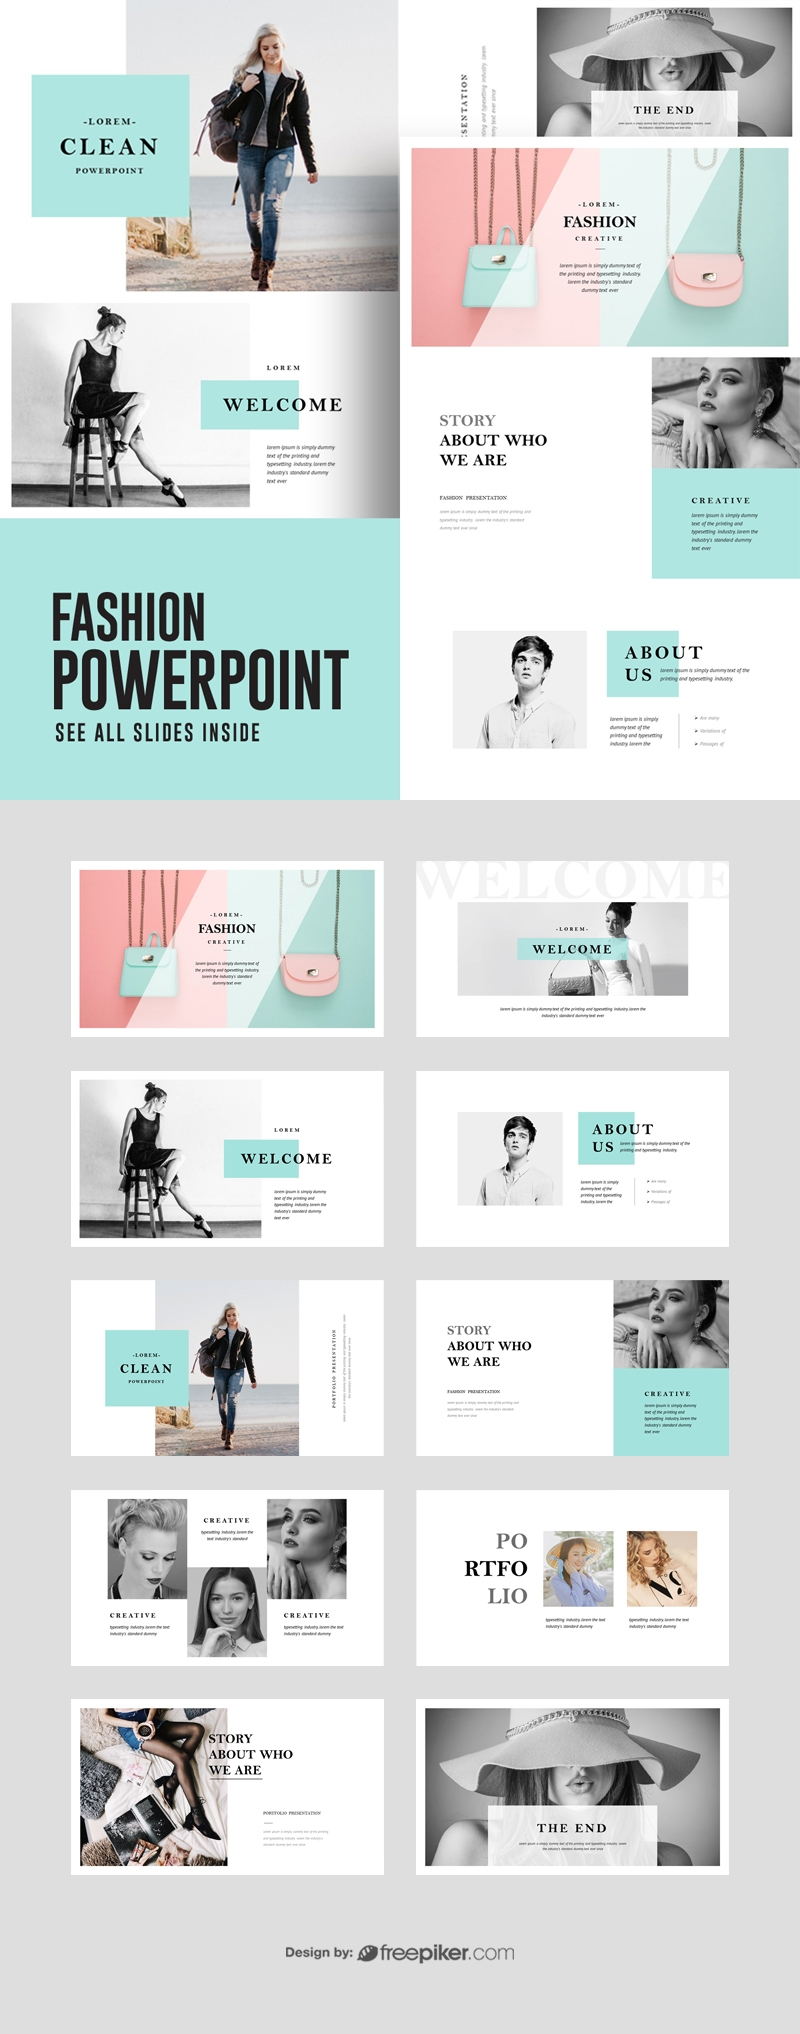 Fashion PowerPoint Presentation Template